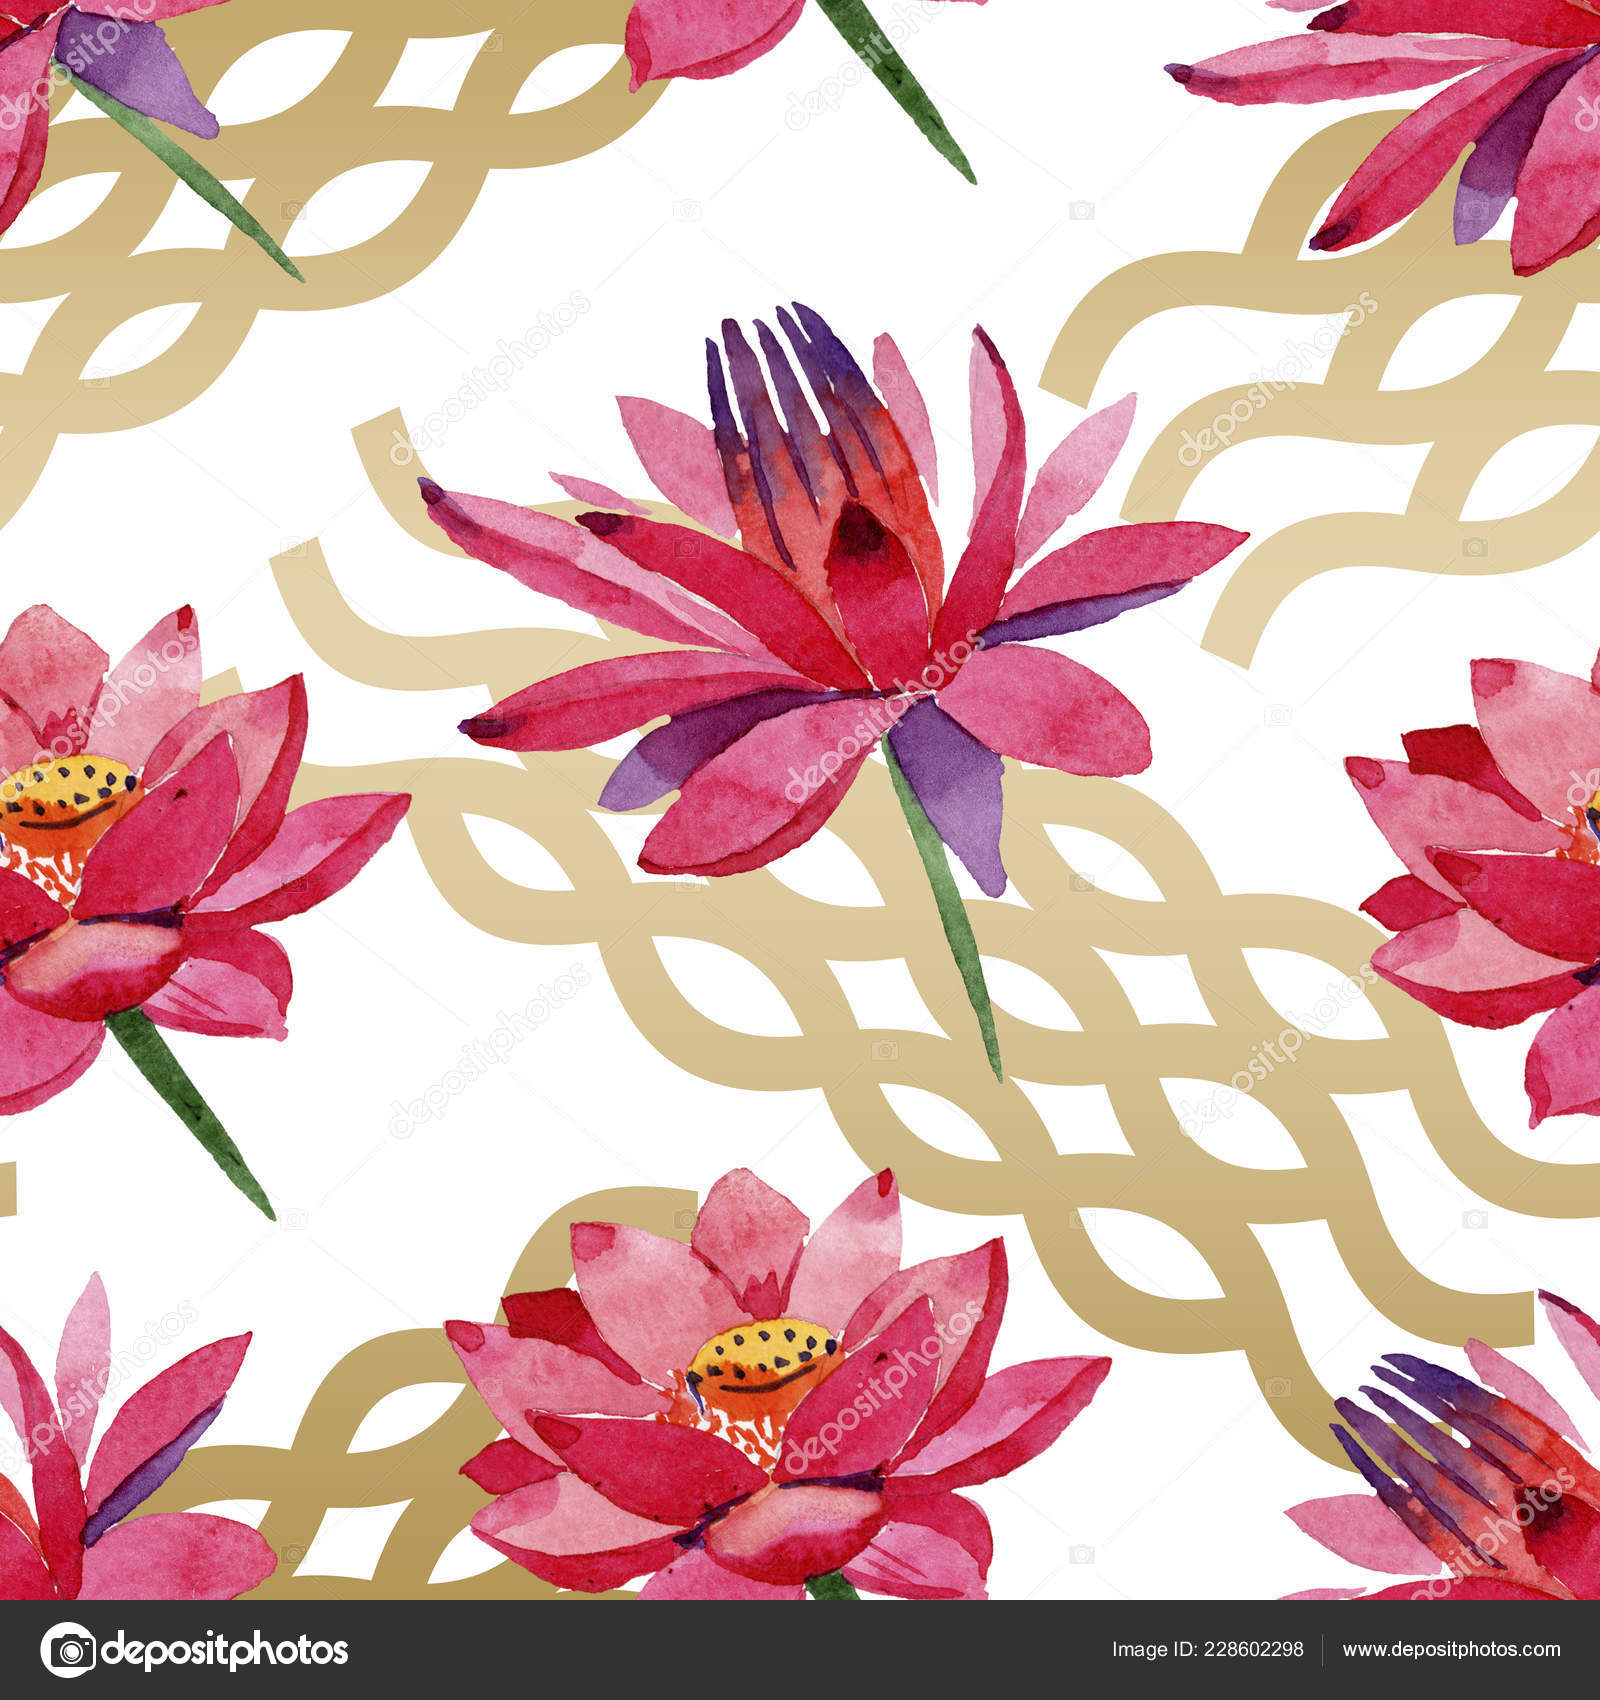 Red Lotus Flowers Watercolor Background Illustration Seamless